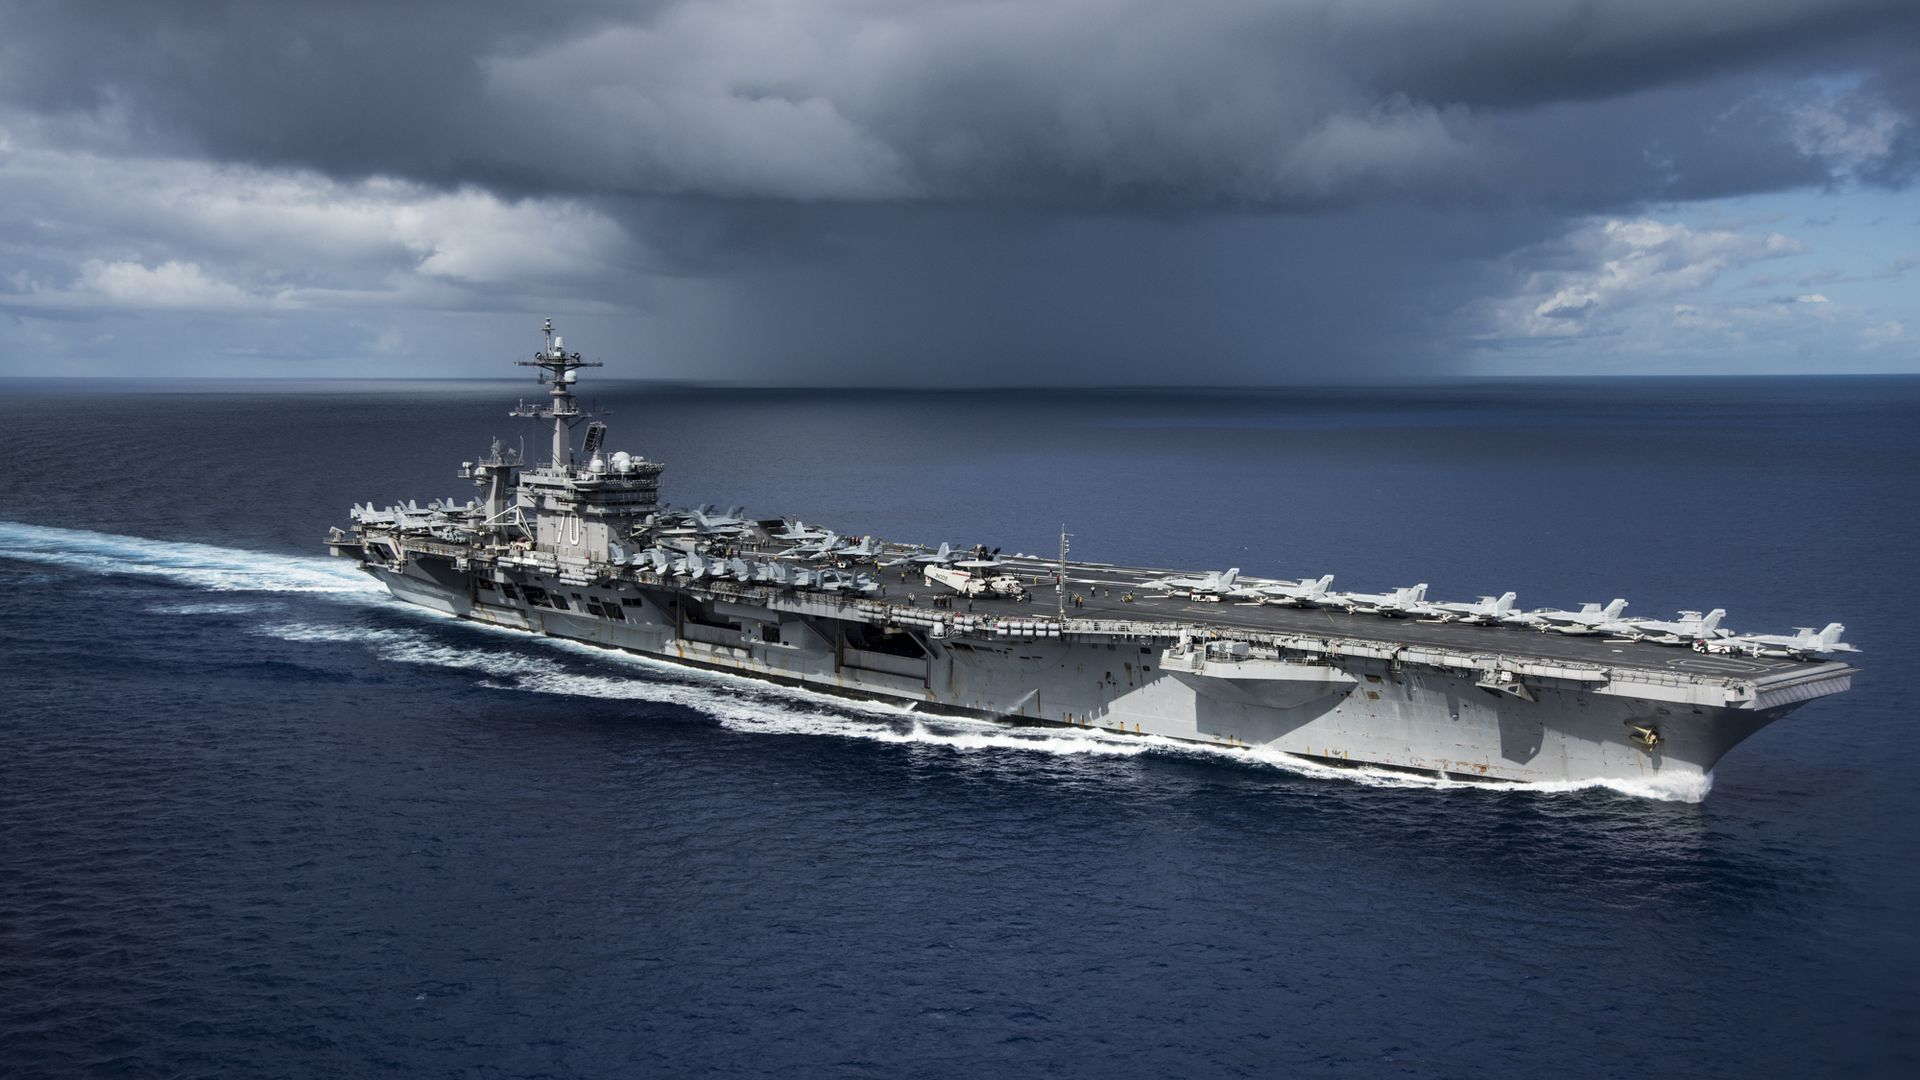 U.S. Navy aircraft carrier in the Pacific Ocean